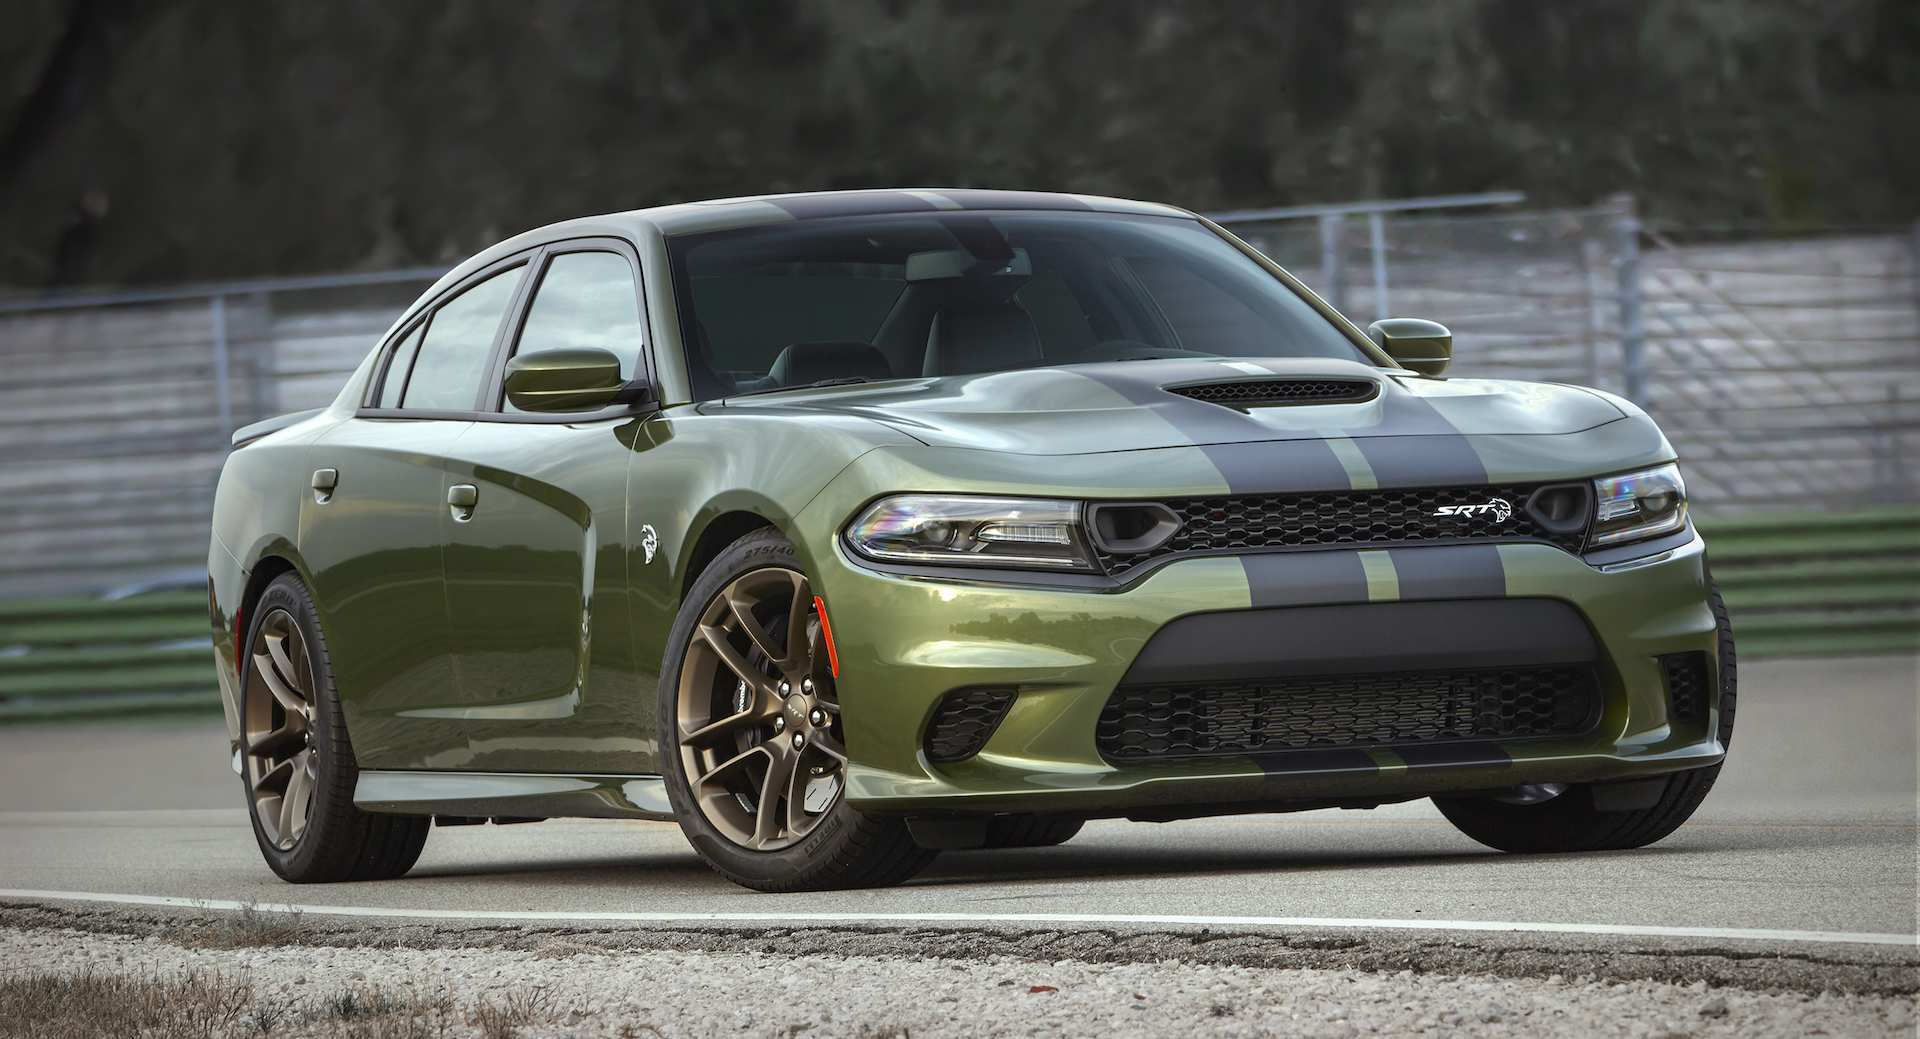 78 The 2019 Dodge Charger SRT8 New Concept